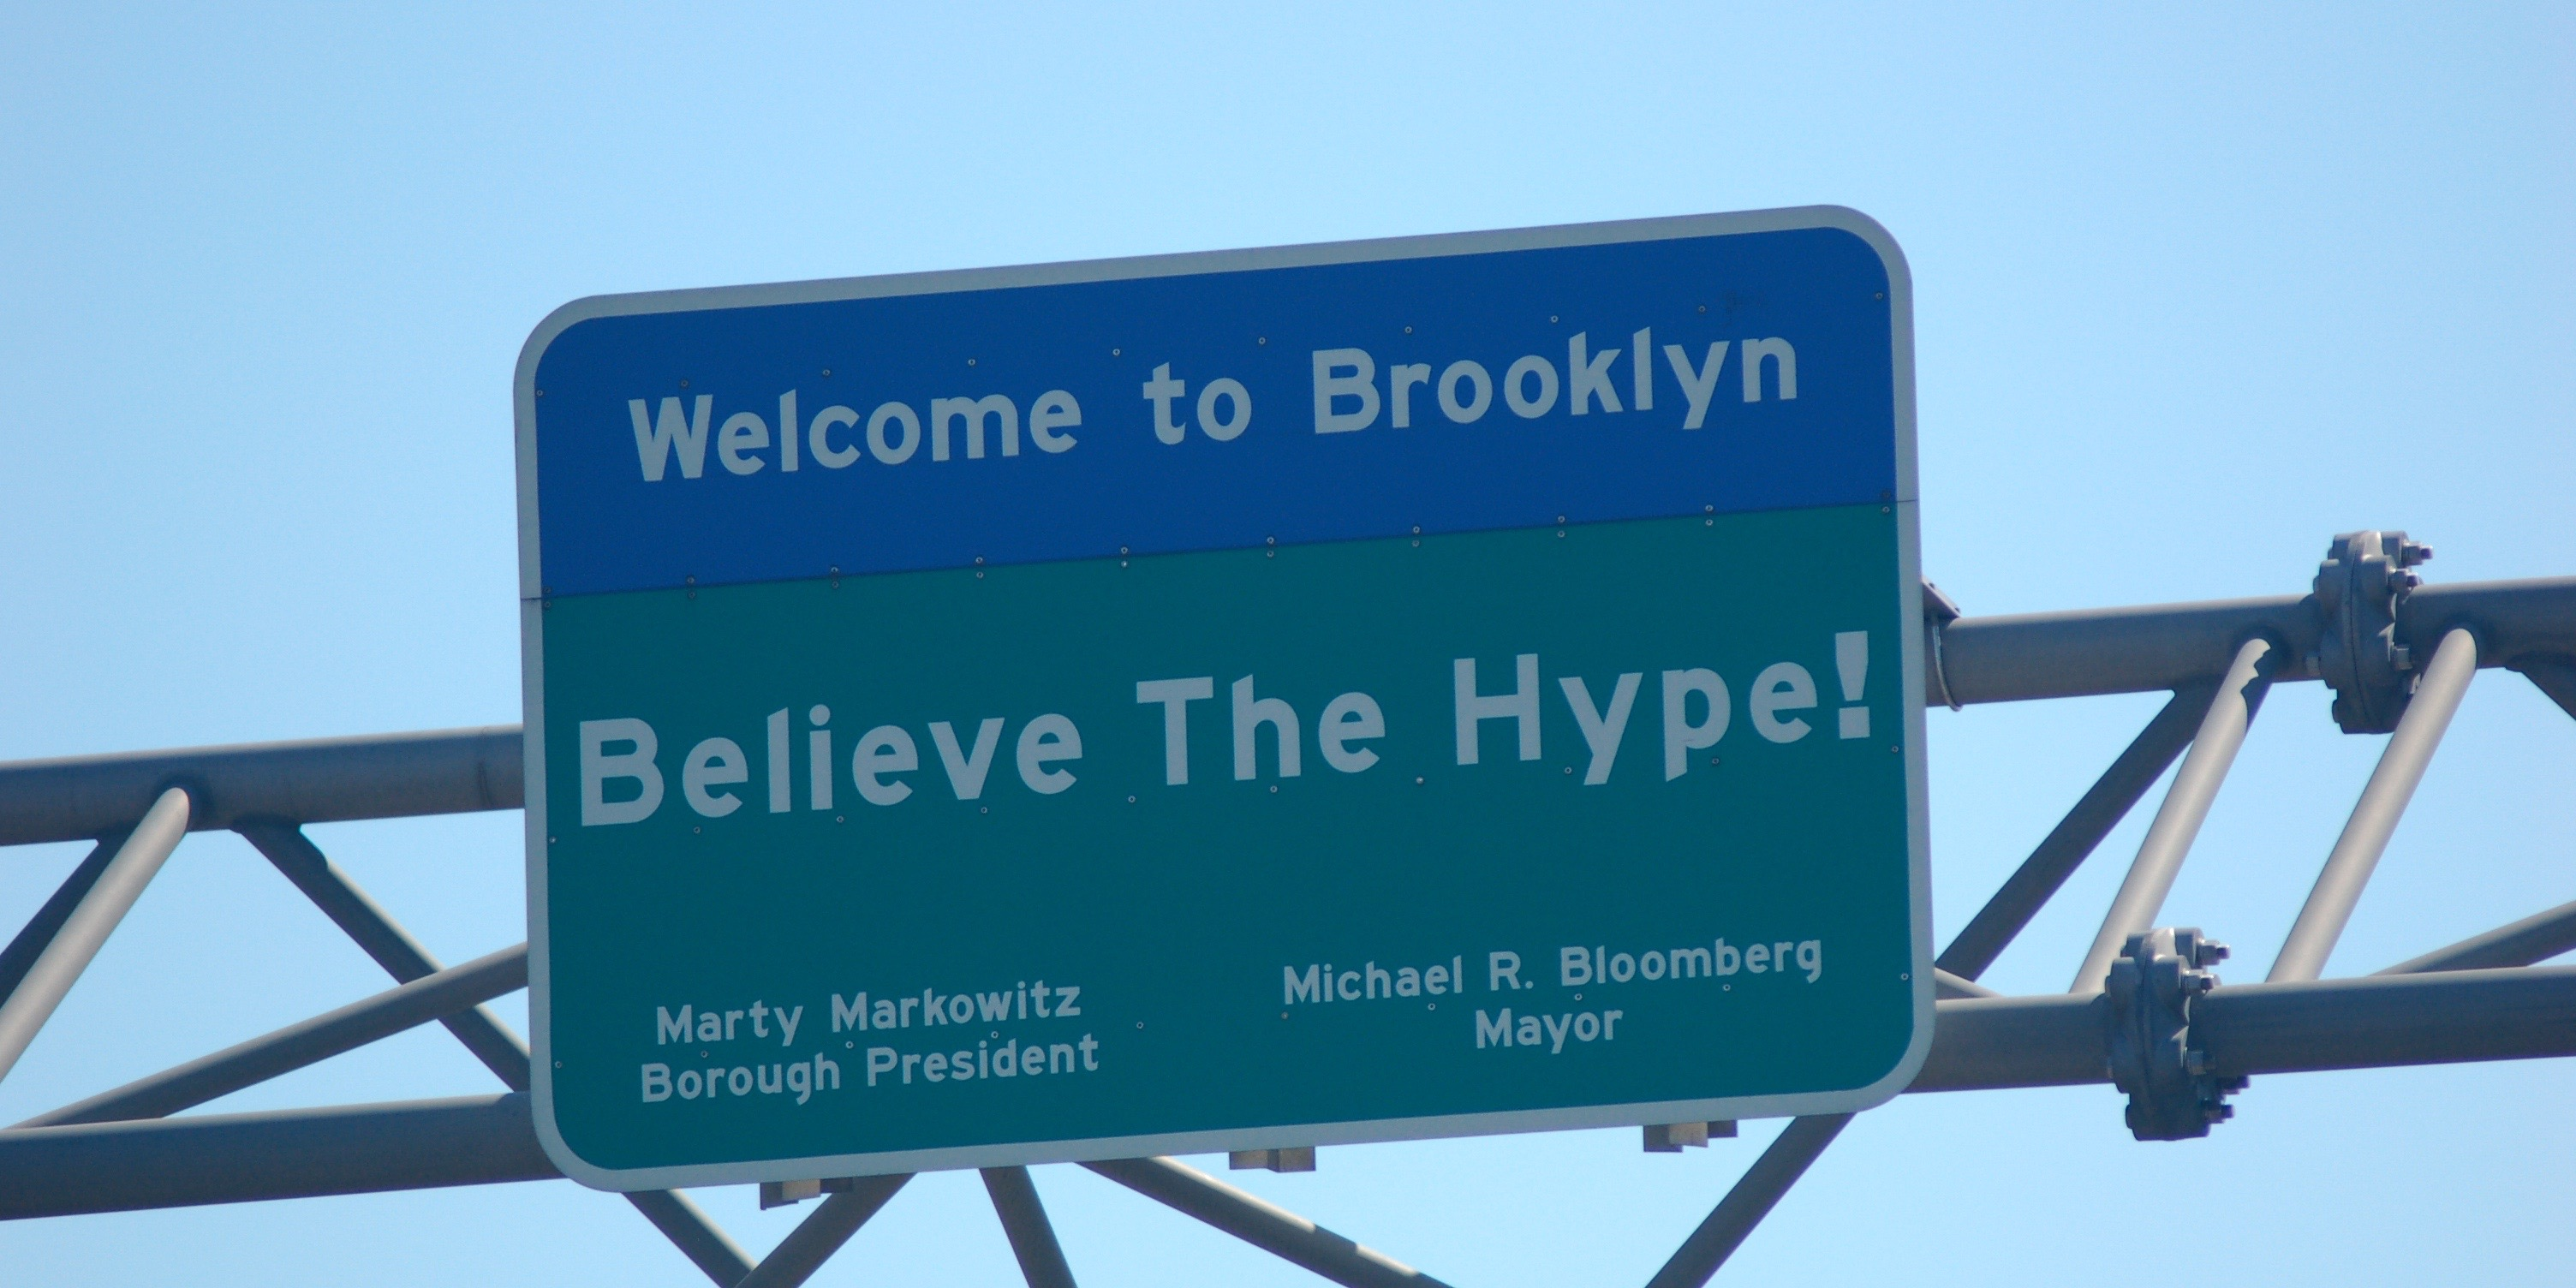 Brooklyn-believehype-hbm-1